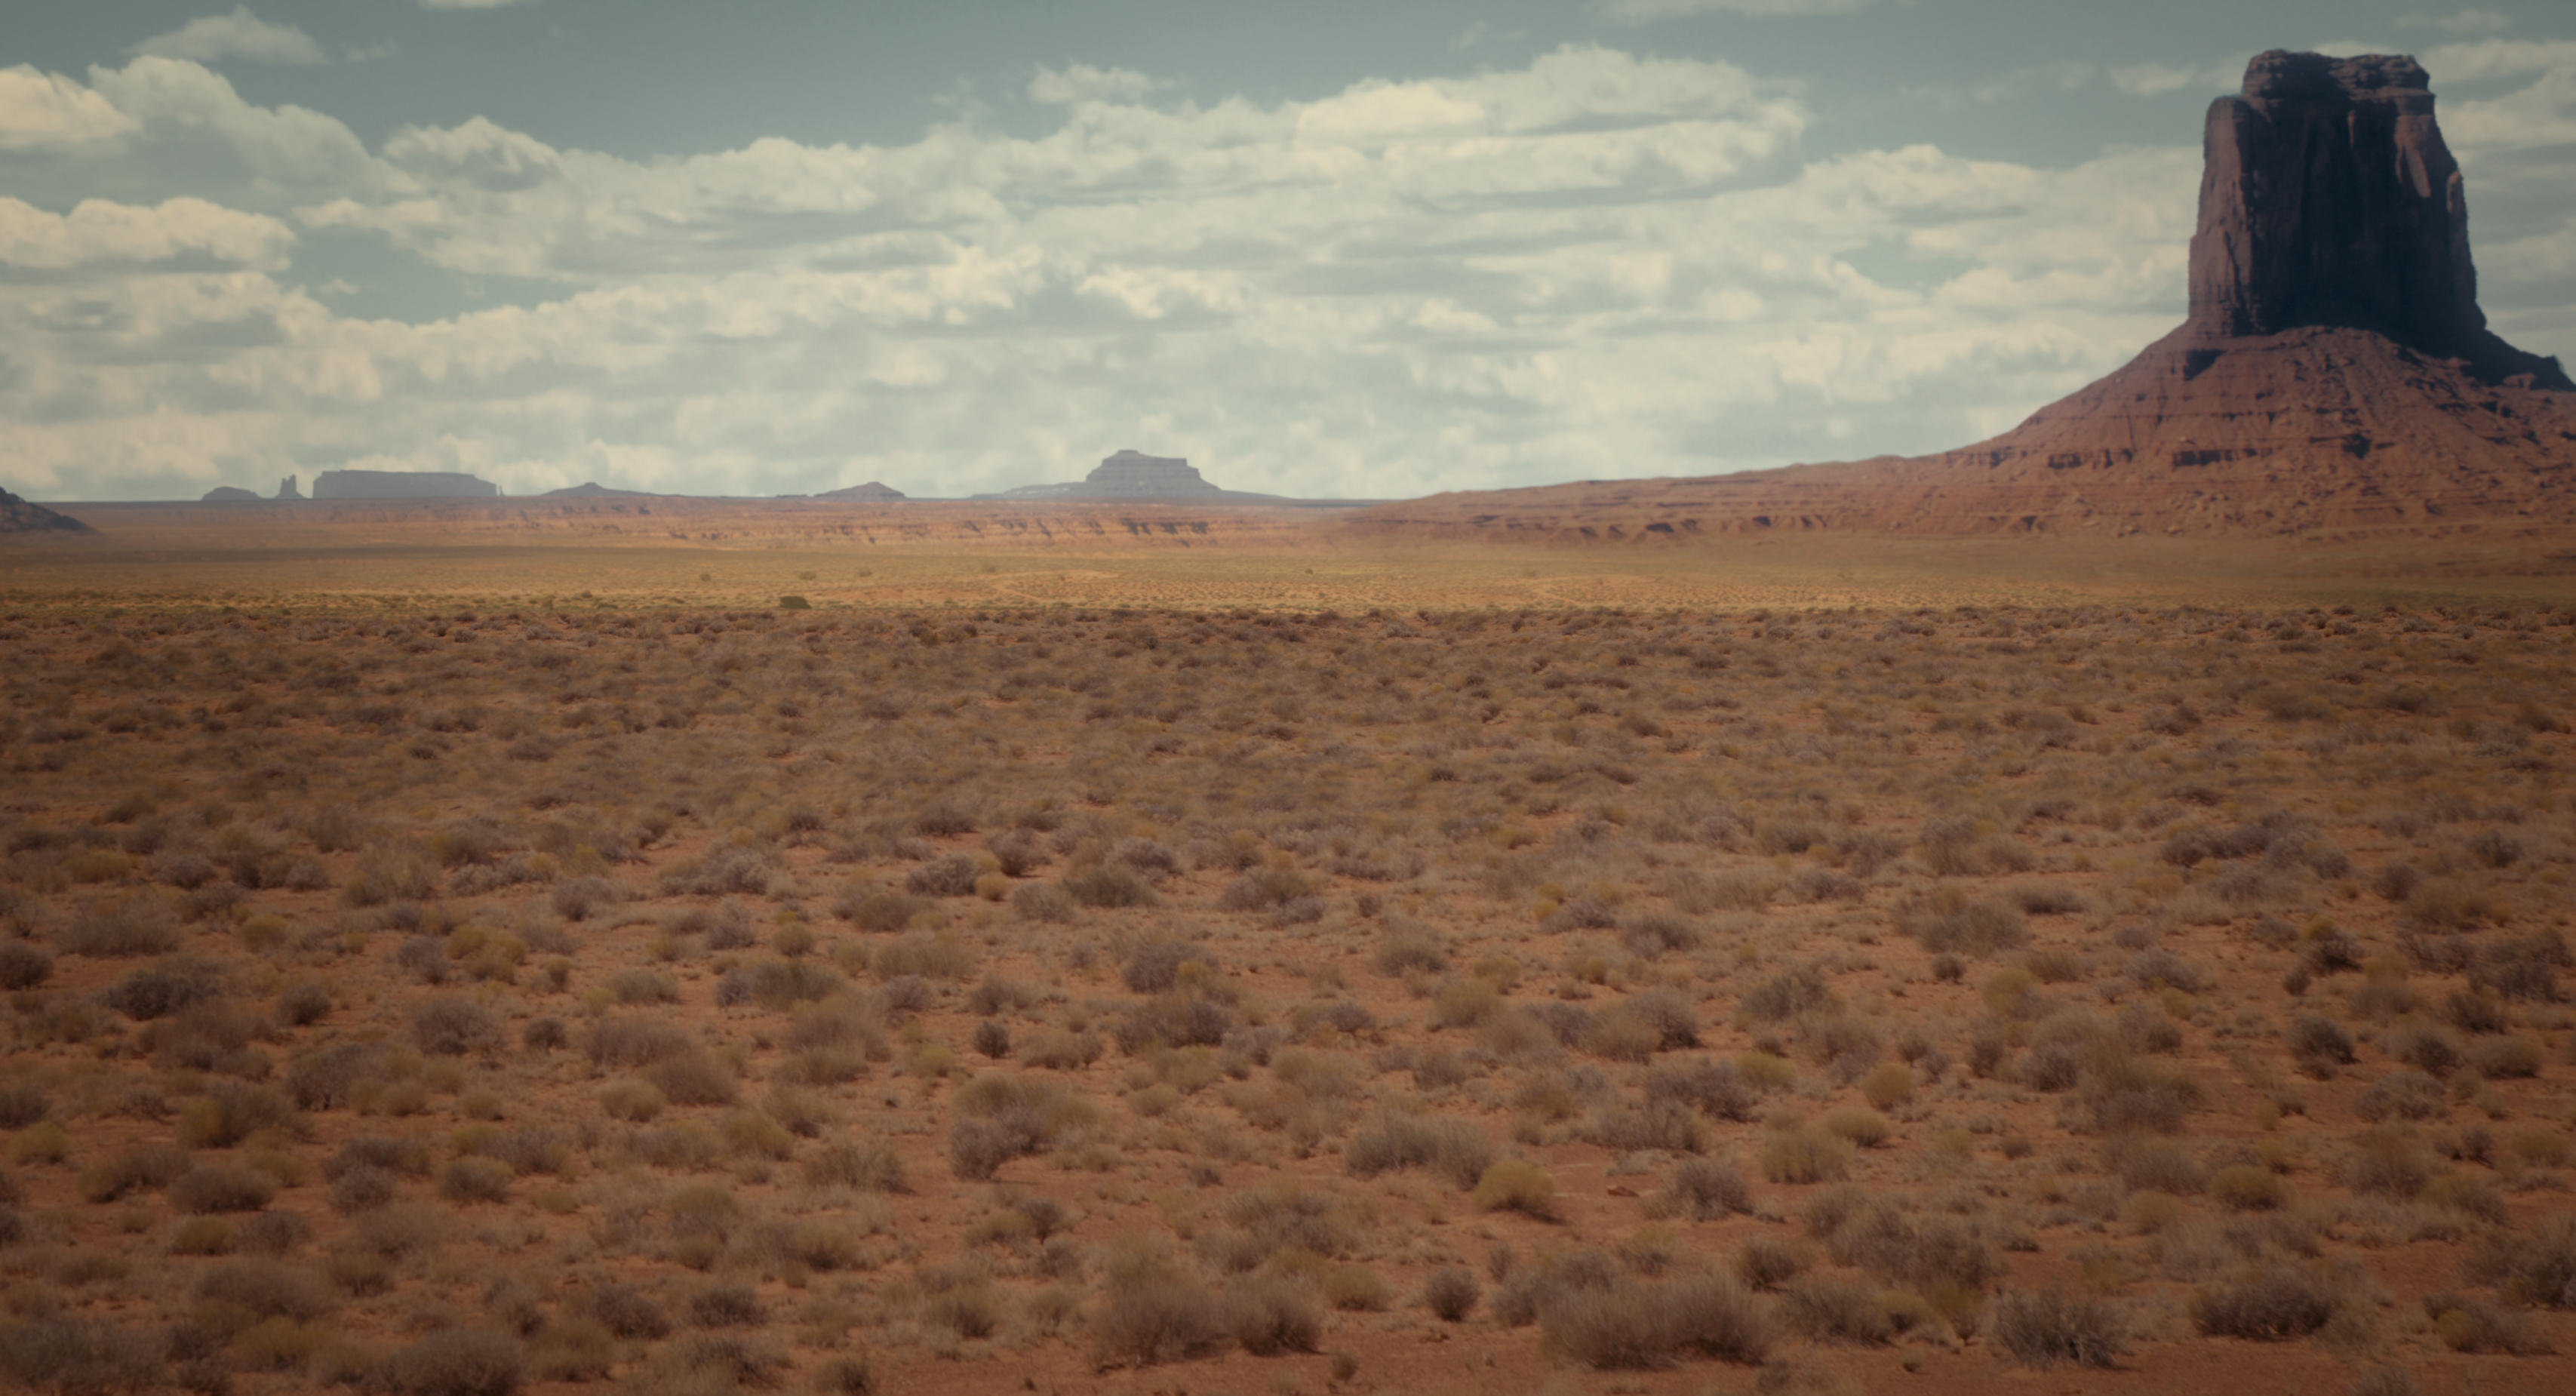 buster-scruggs-vfx-east-side-bbs-01-020-b